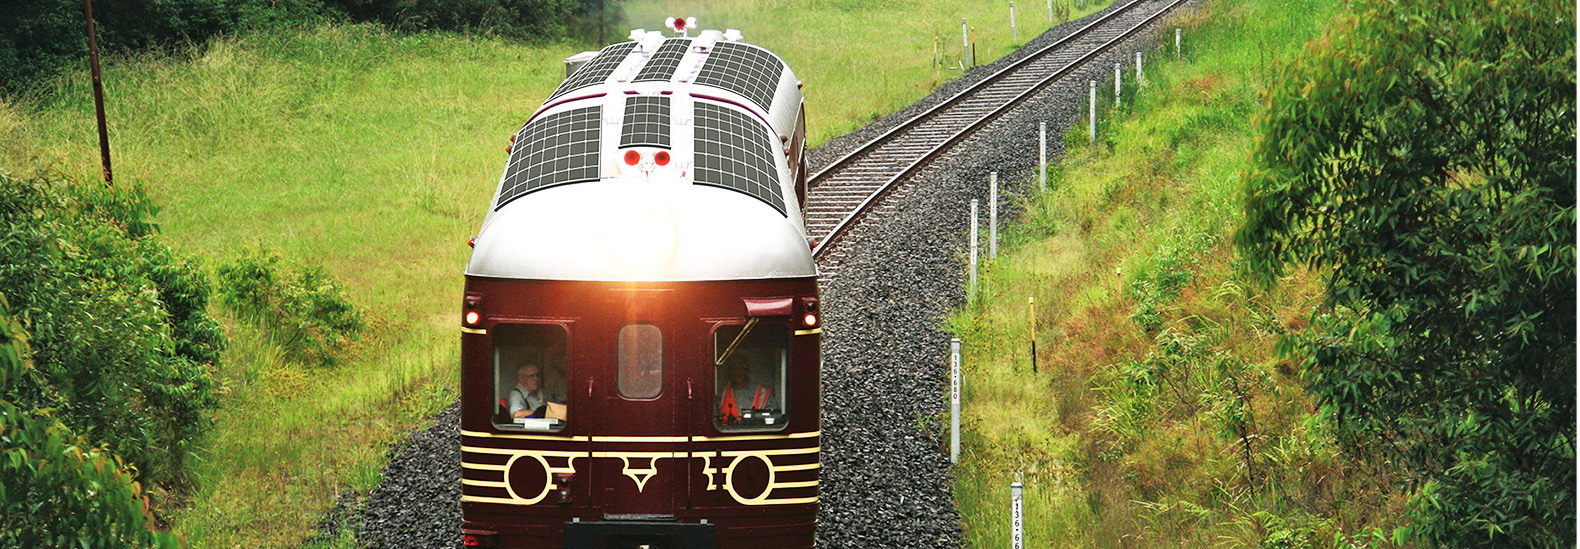 Byron Bay Fully Electric Solar Powered Train 1